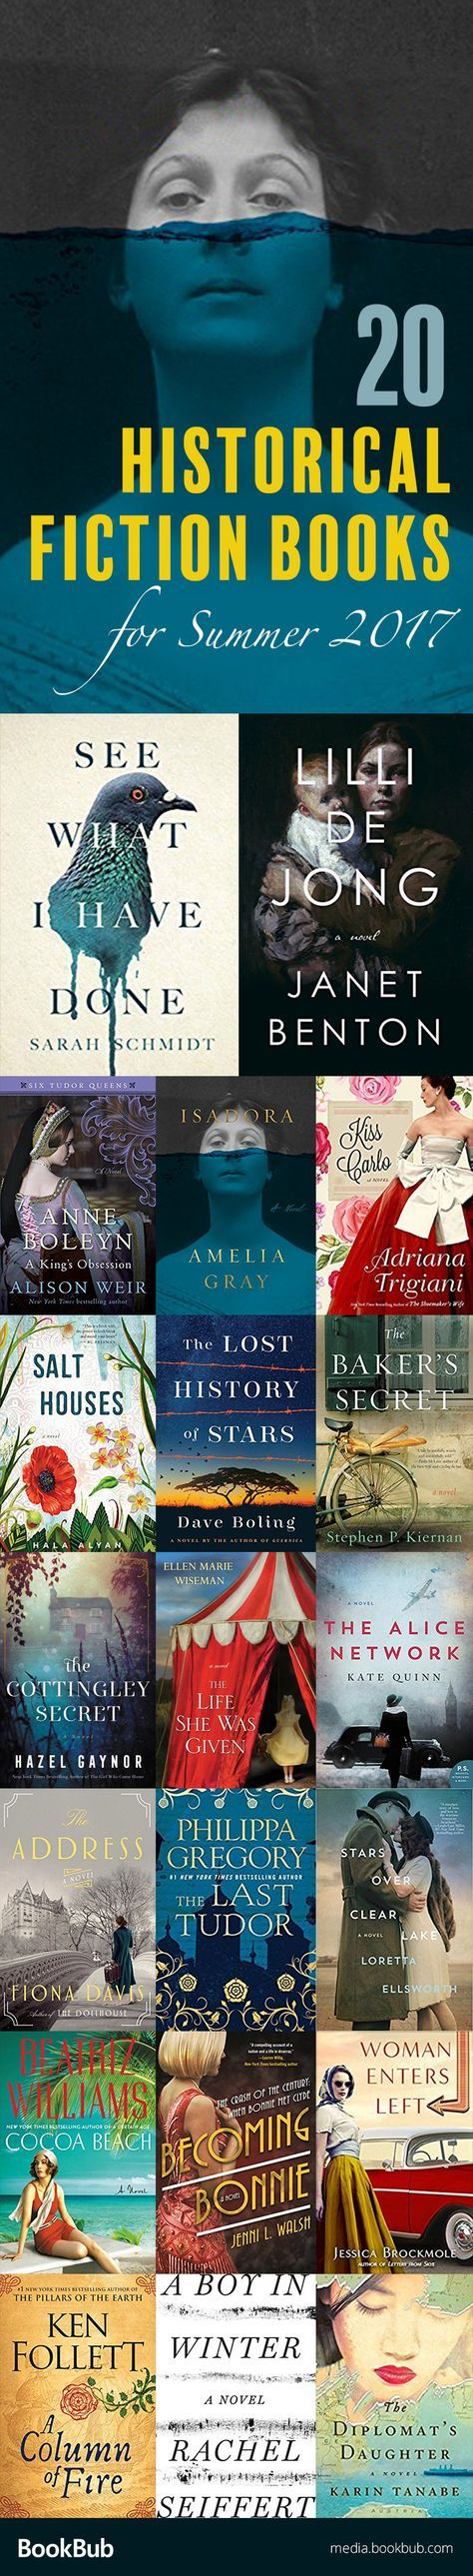 20 History Books Worth Reading Summer 2017 If You Love Historical Fiction,  These Book